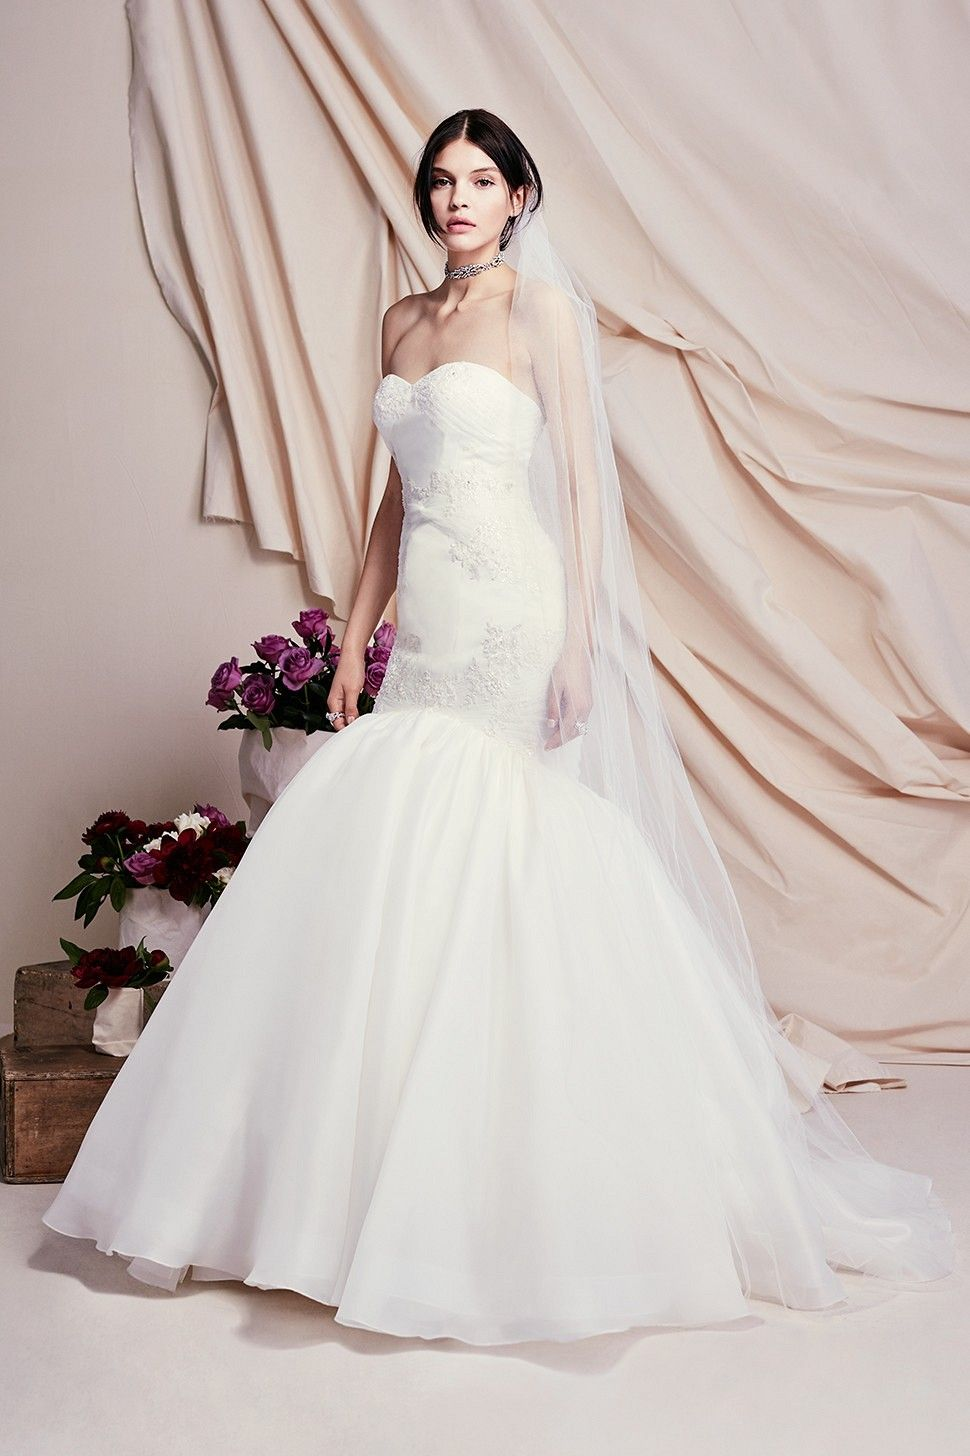 Zac Posen Tells Us All About His Wedding Dress Collection